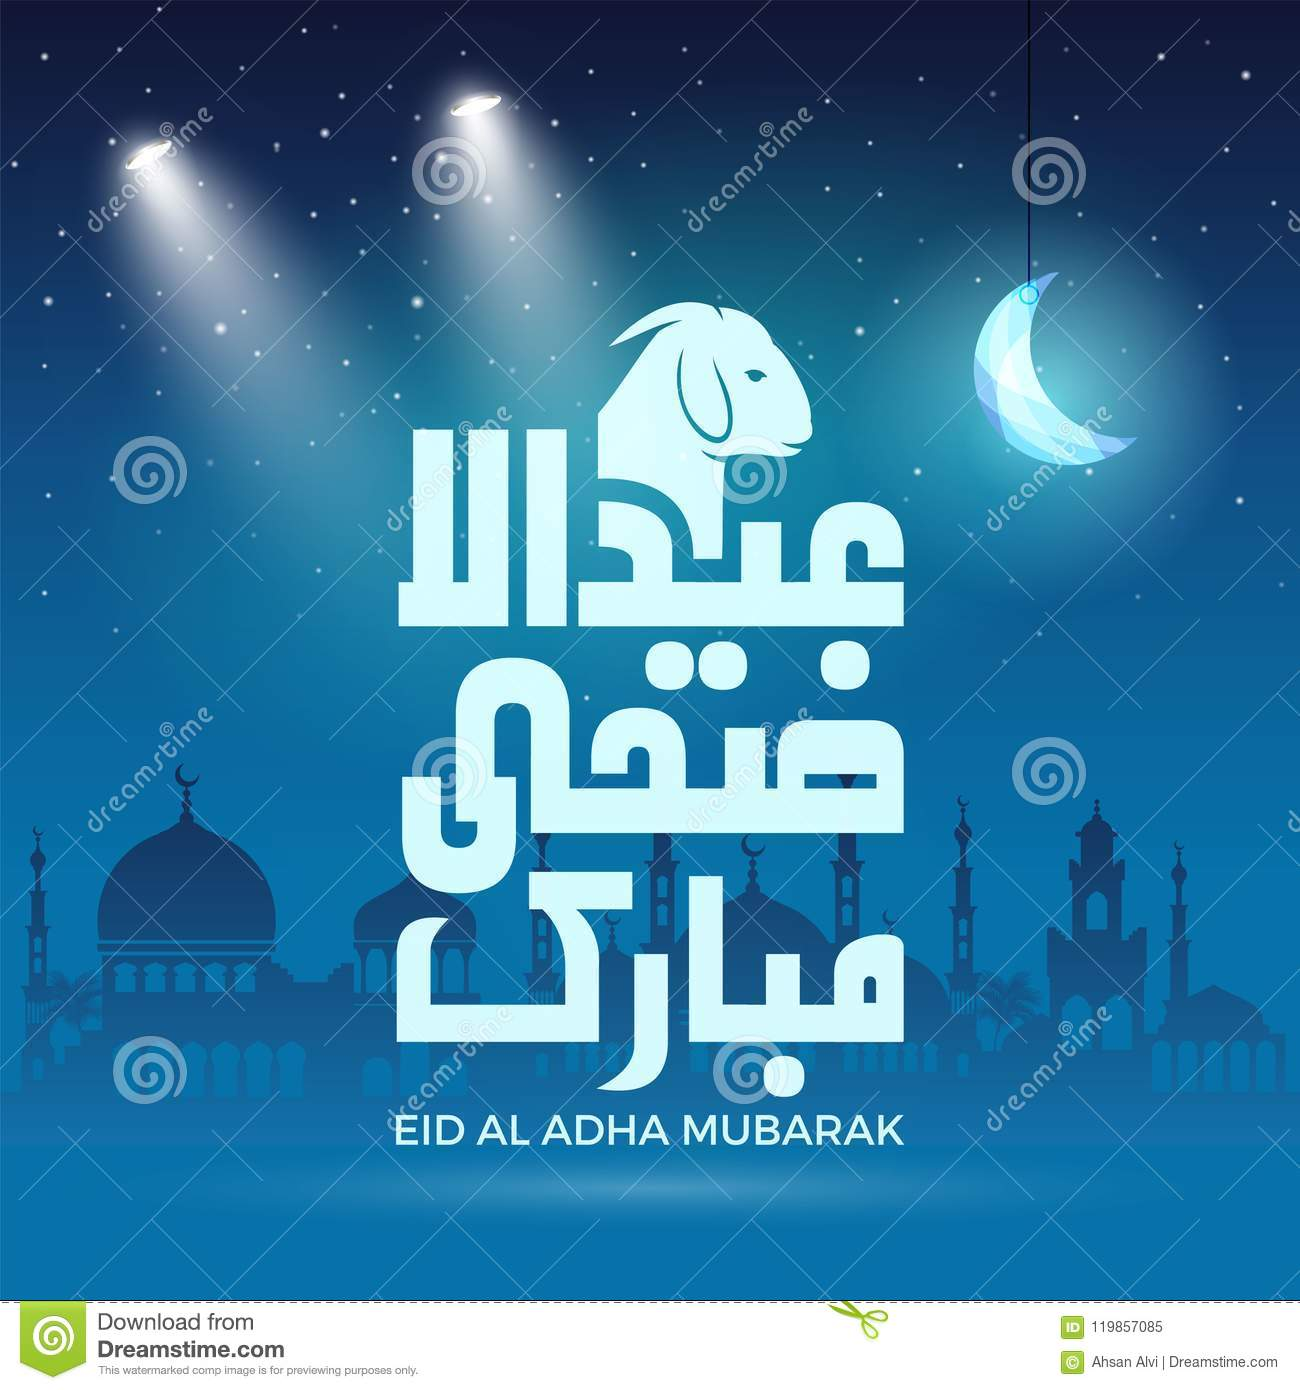 Eid Al Adha Mubarak Vector Illustration Greeting Card Design Stock